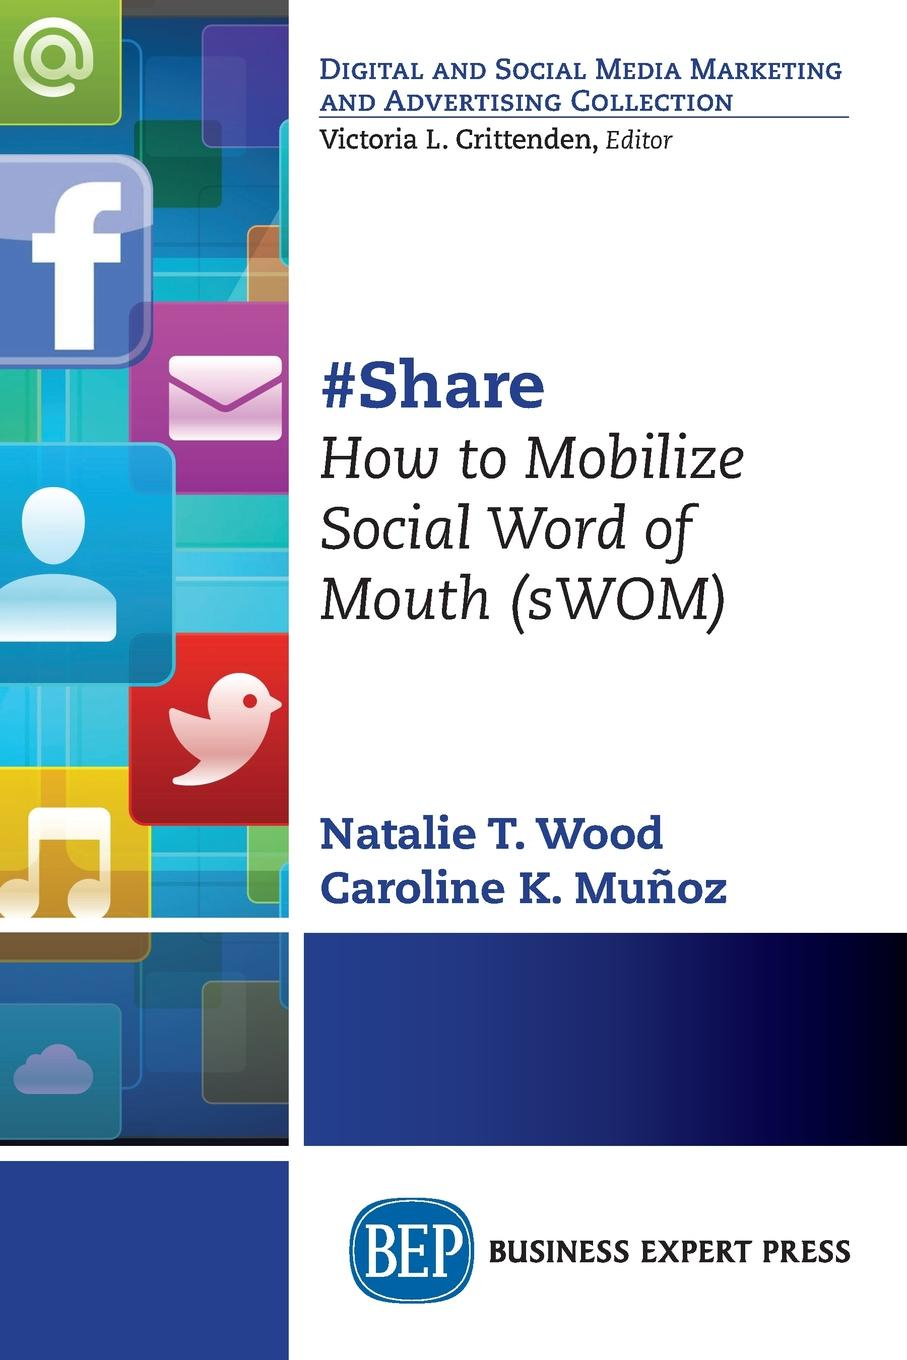 Natalie T. Wood, Caroline K. Muñoz .Share. How to Mobilize Social Word of Mouth (sWOM) john moore the passion conversation understanding sparking and sustaining word of mouth marketing